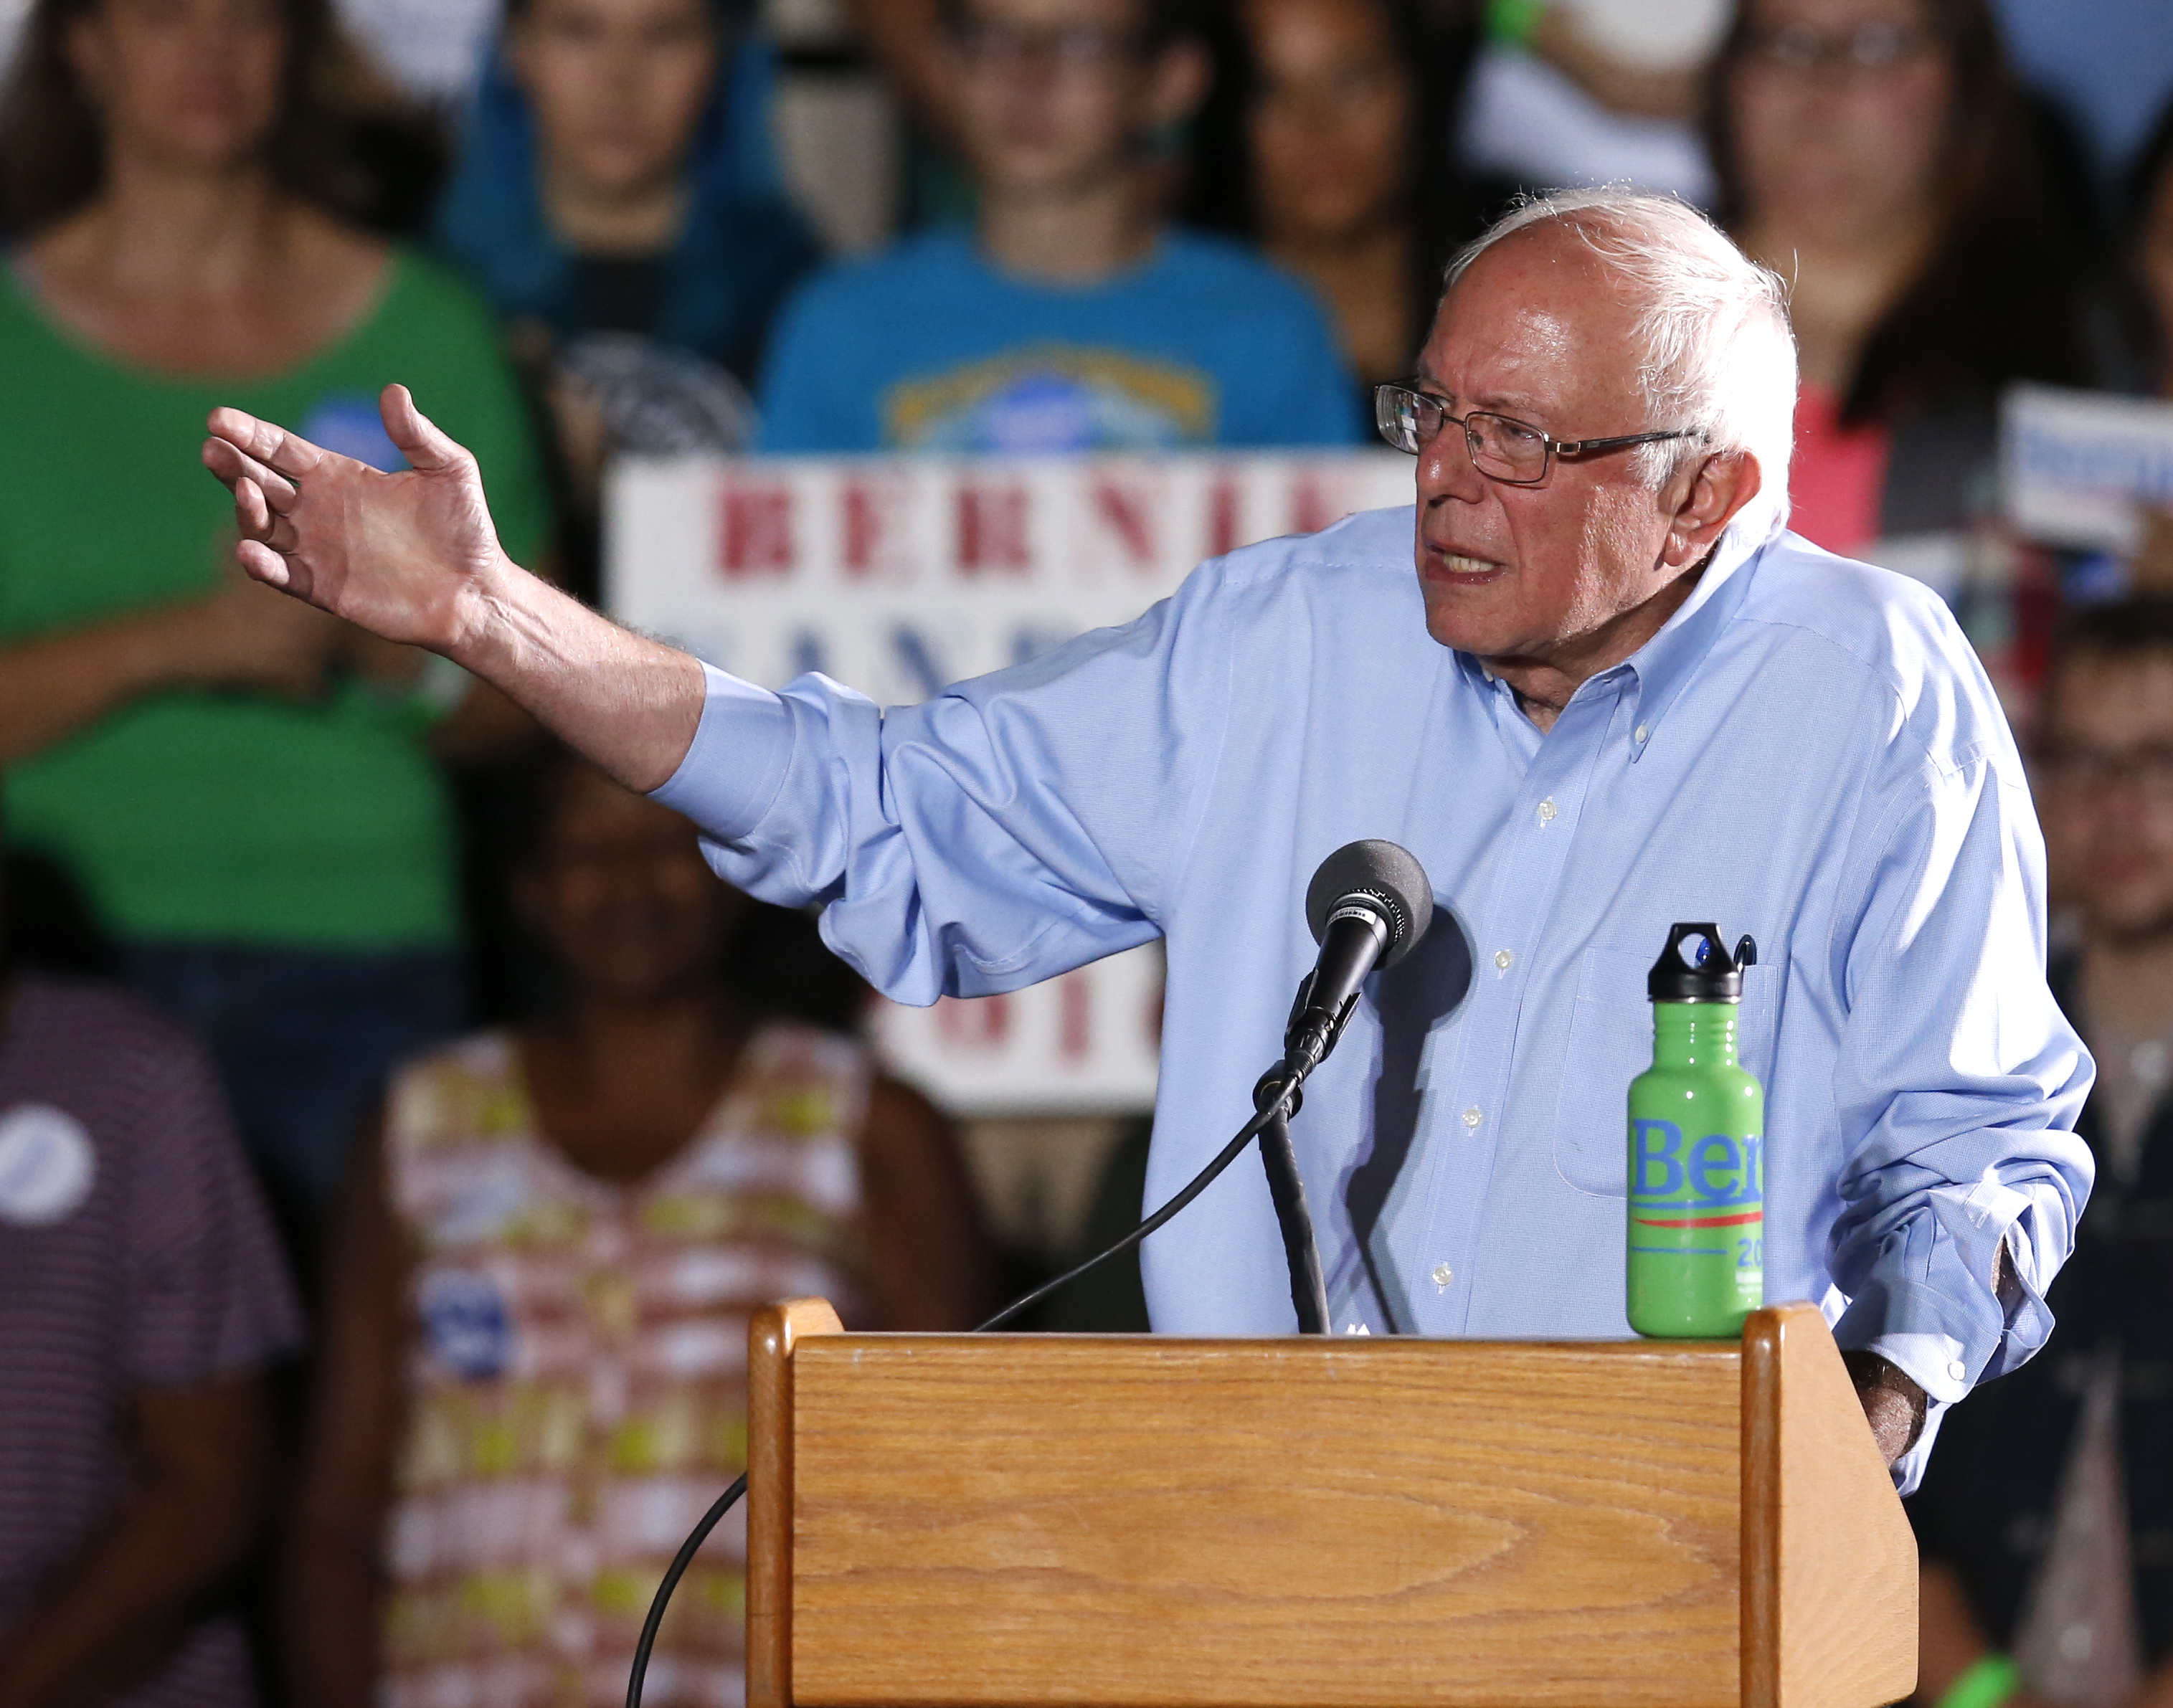 Photo: Democratic presidential candidate Sen. Bernie Sanders in Tucson